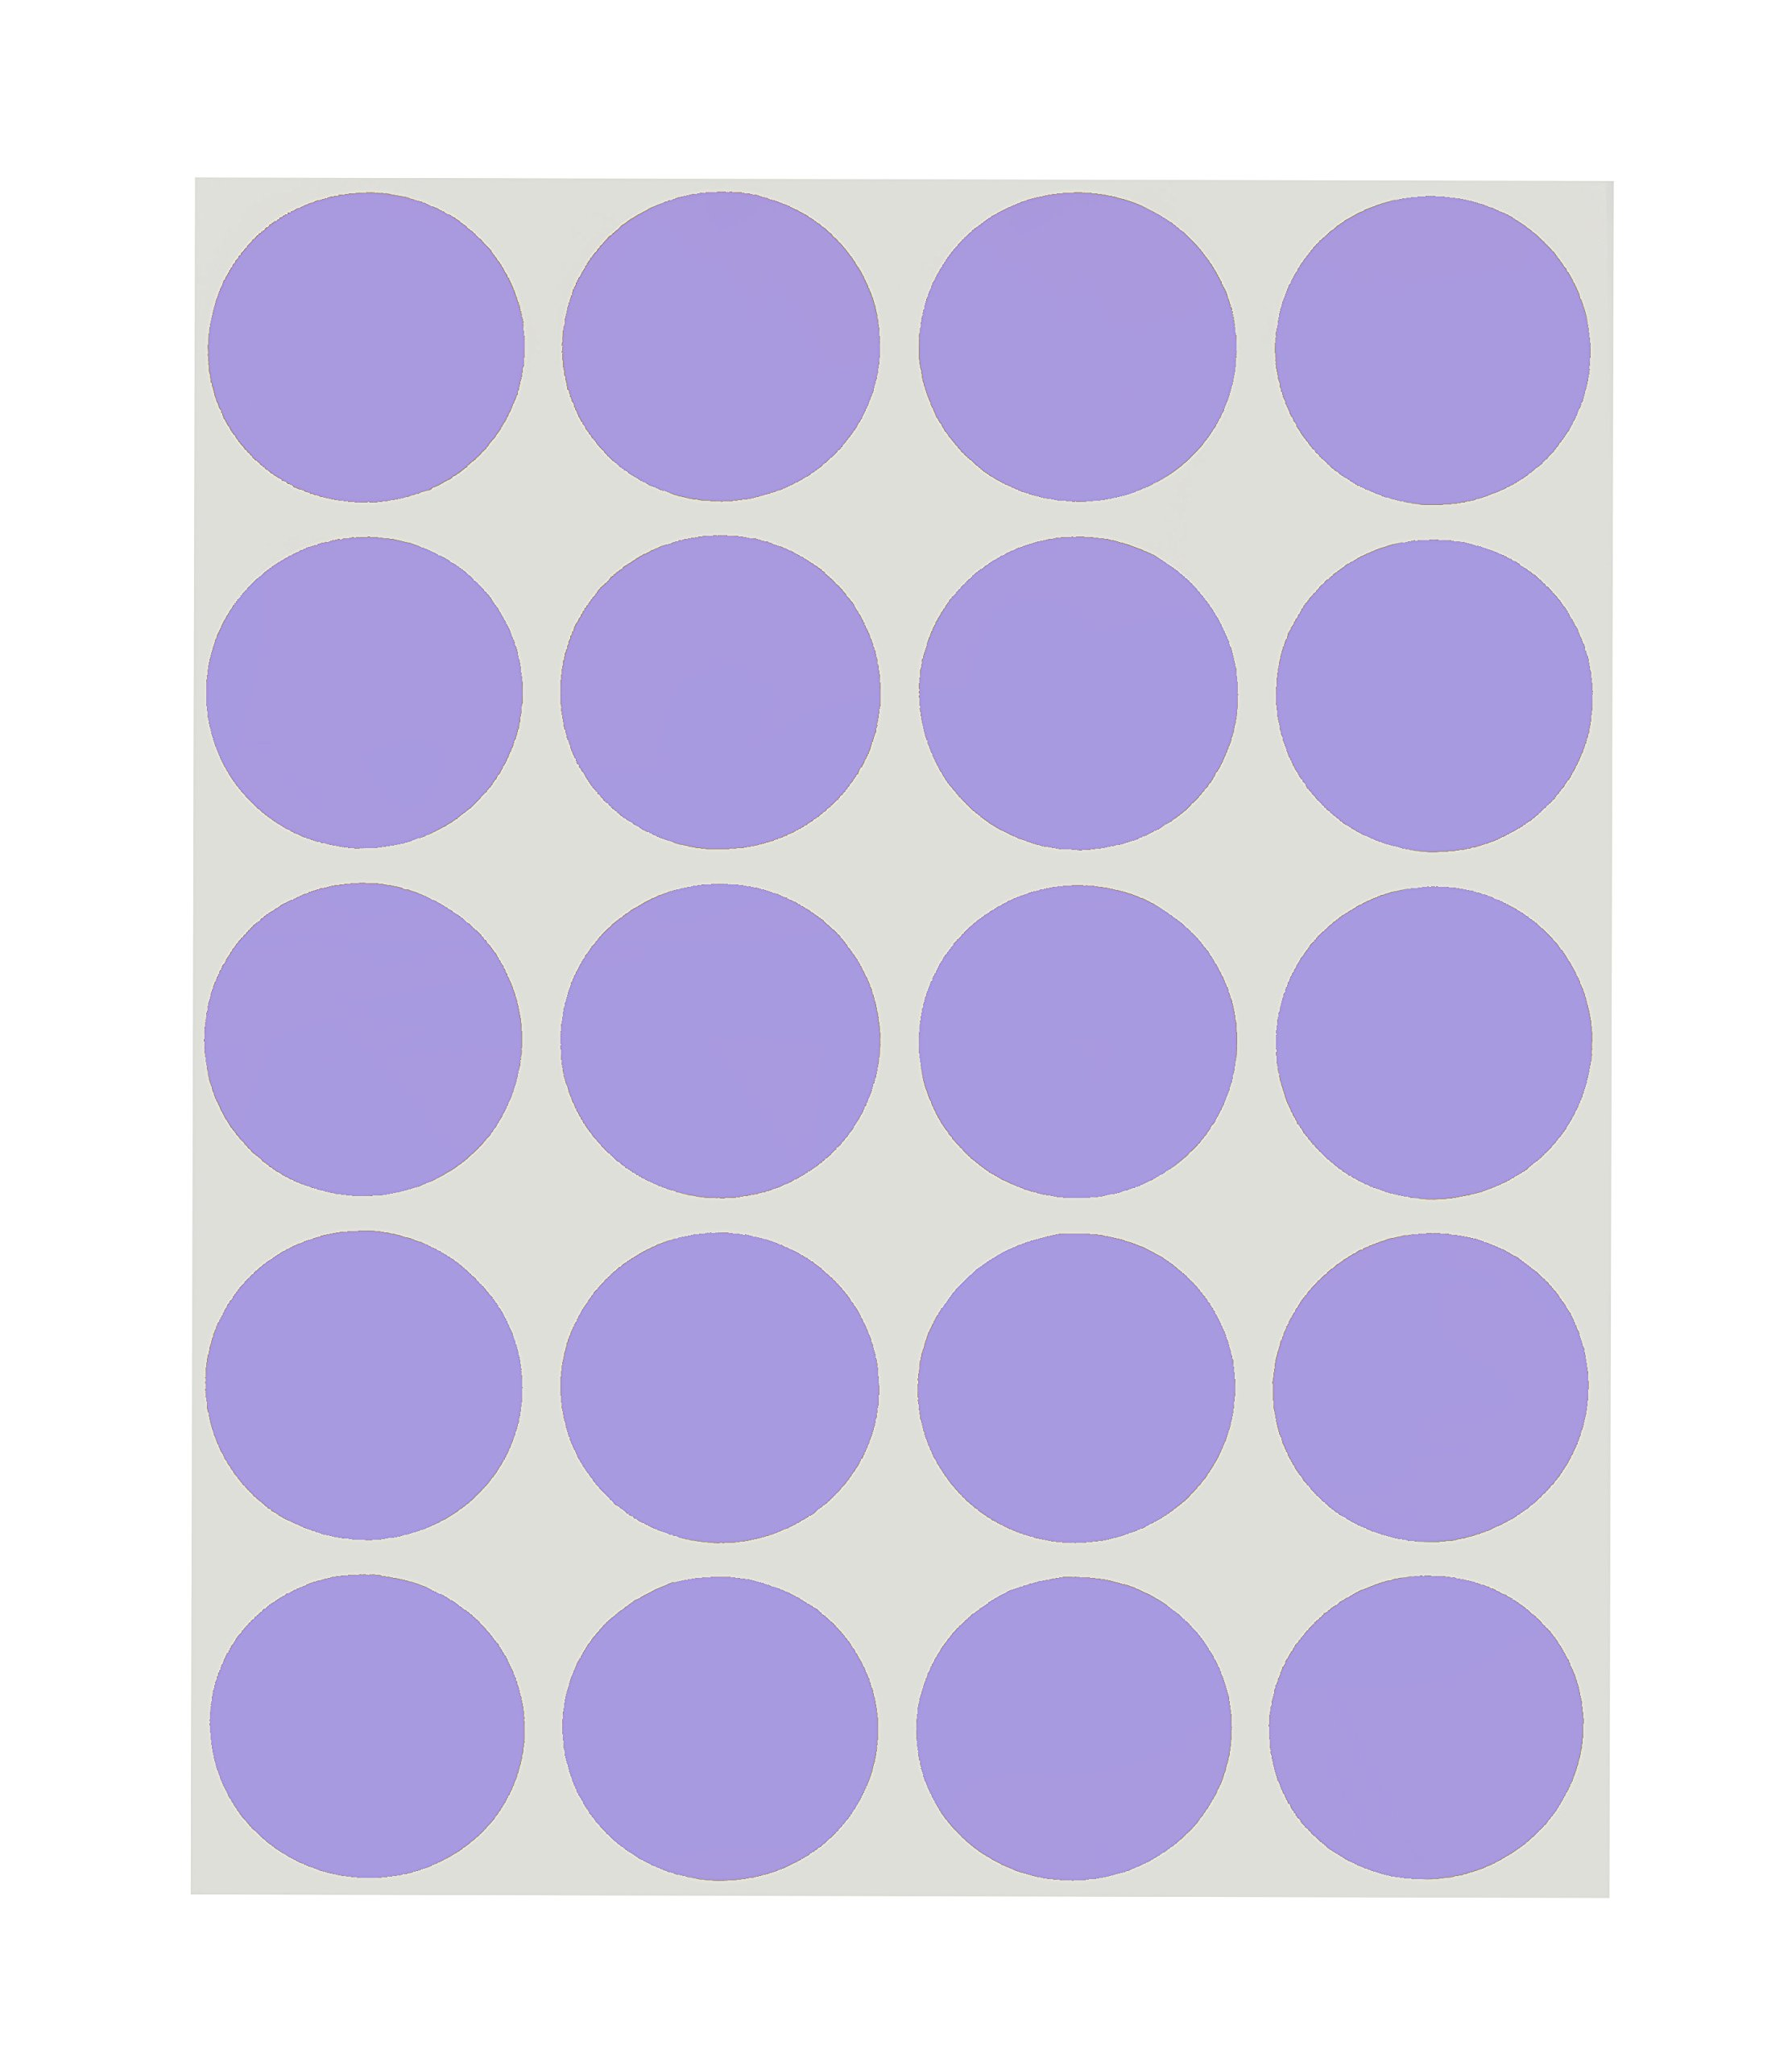 ChromaLabel 1 inch Removable Color-Code Dot Labels on Sheets | 1,000/Pack (Lavender)